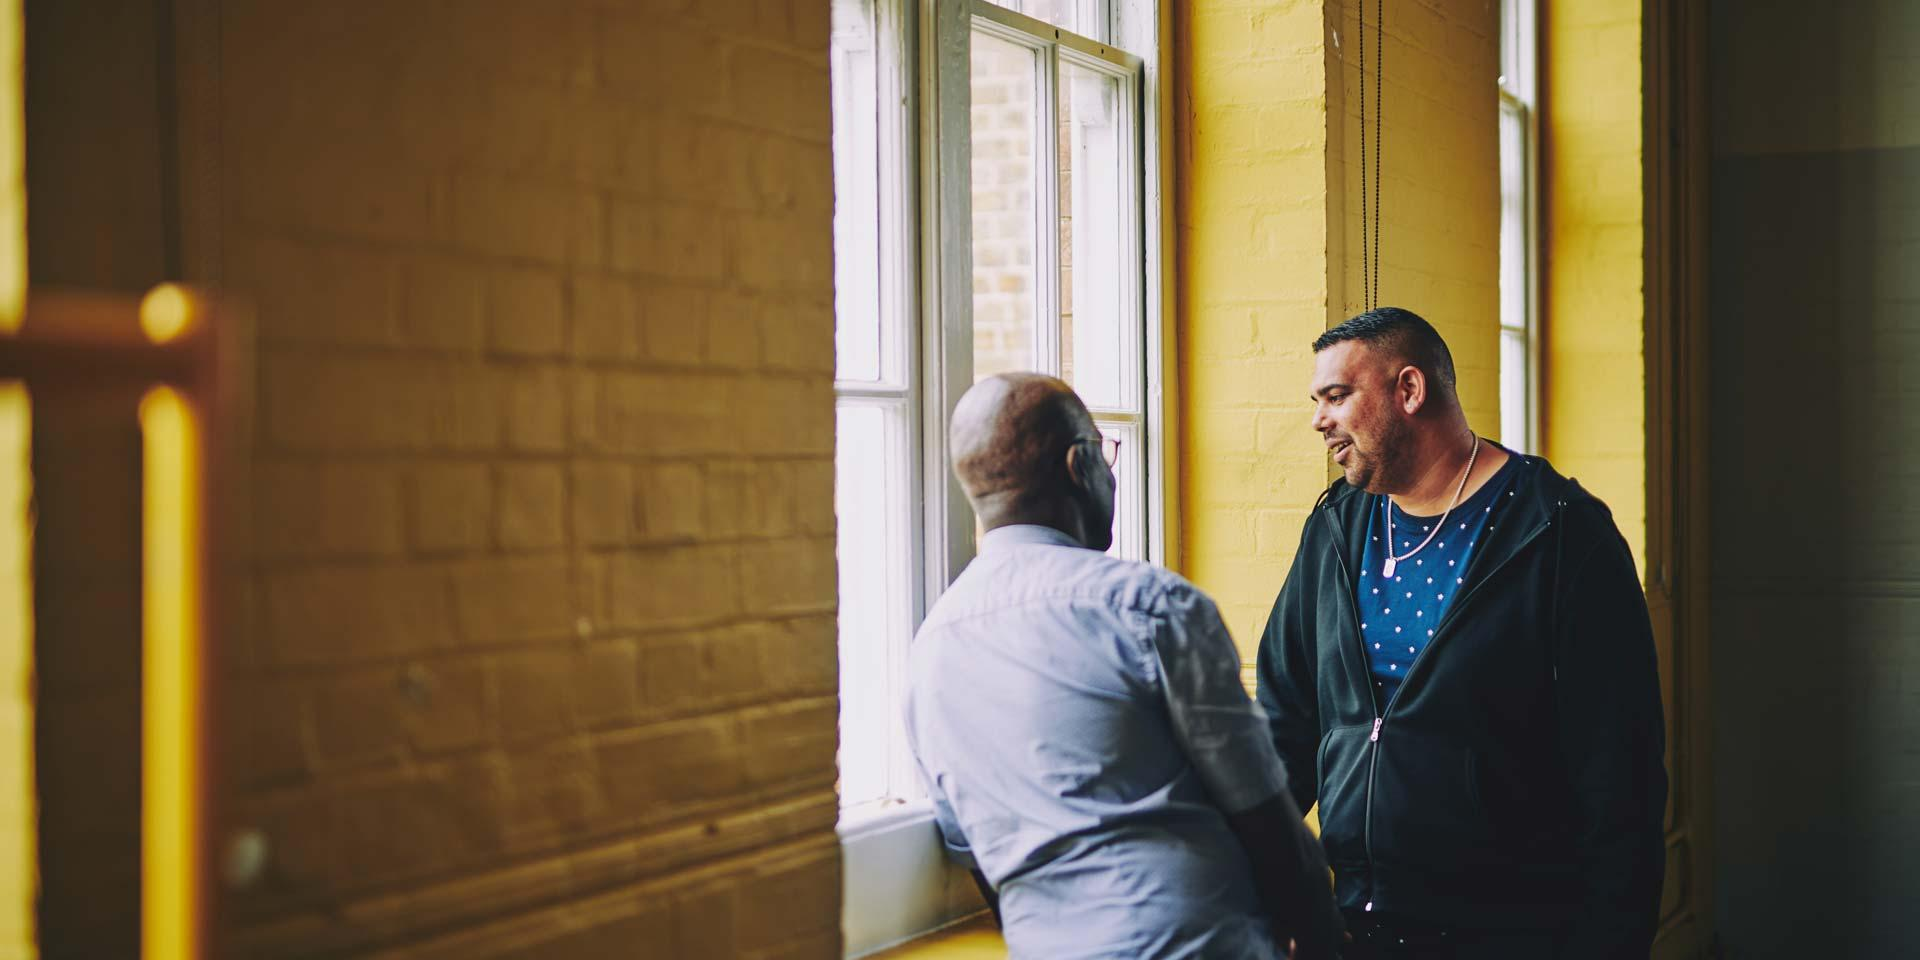 Two men are having a conversation by a window